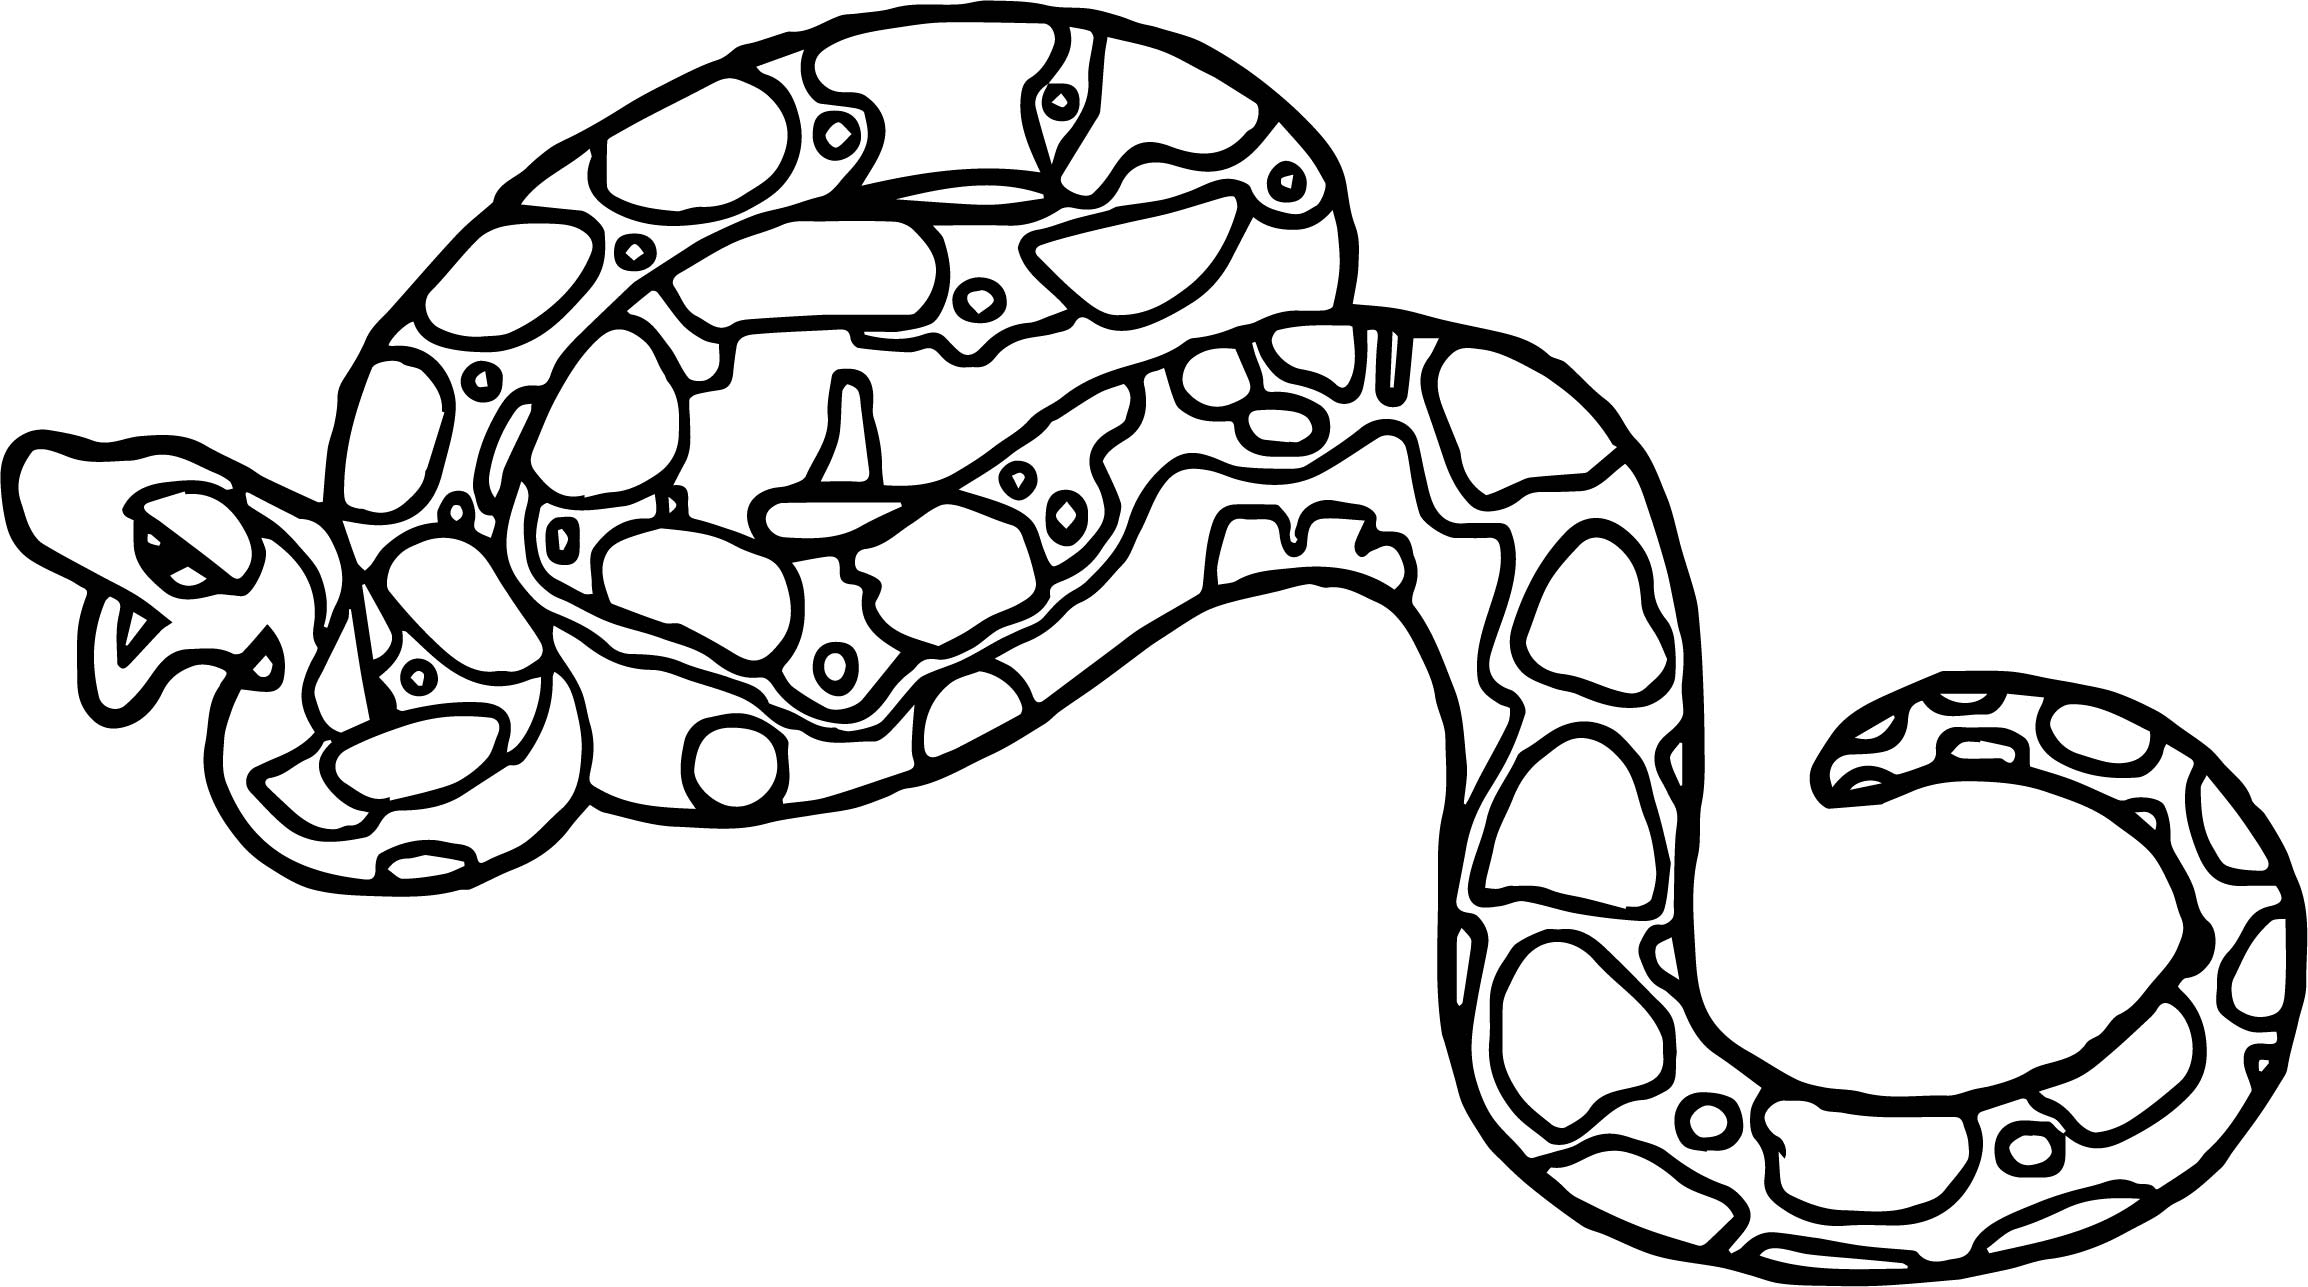 Rainforest Boa Coloring Page